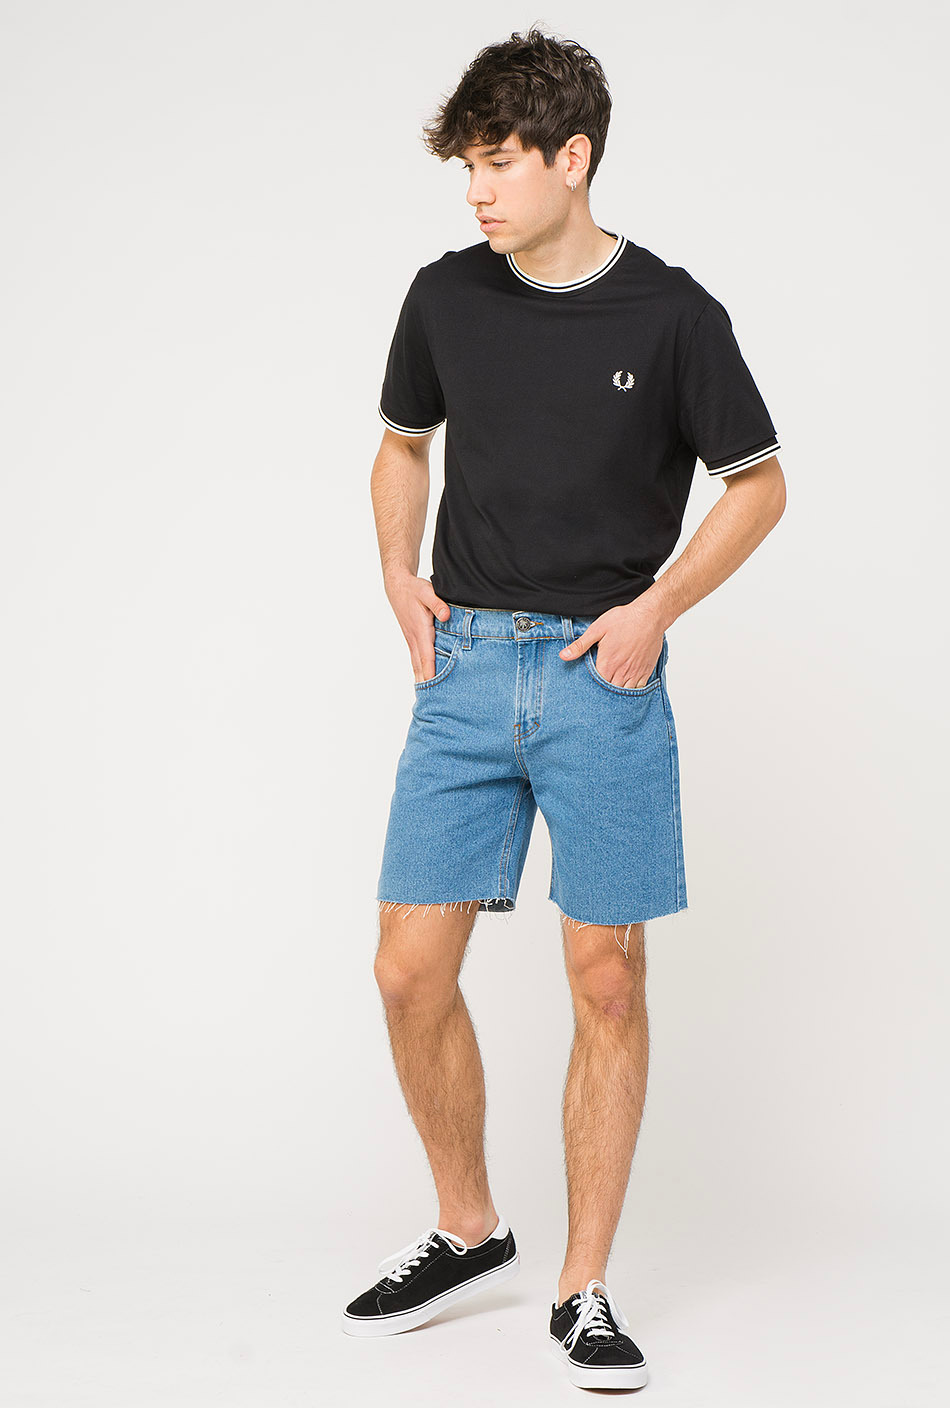 Fred Perry Black T-shirt